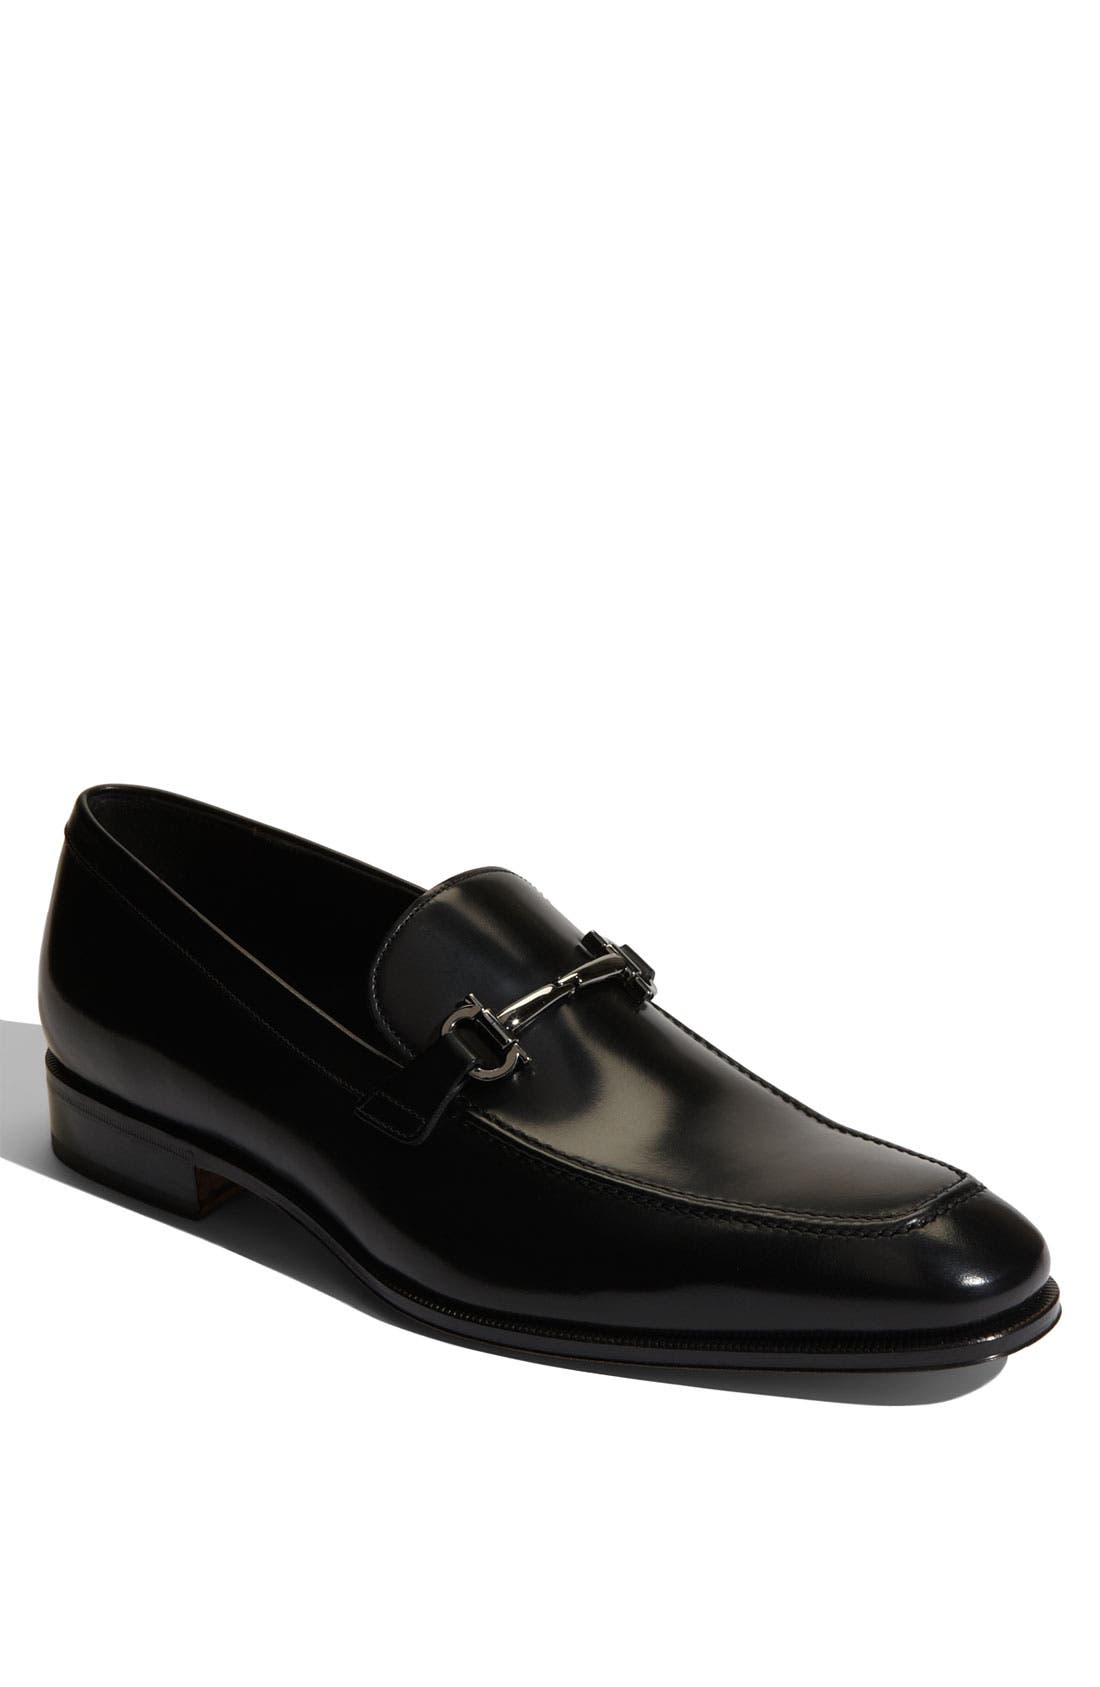 Main Image - Salvatore Ferragamo 'Fenice' Loafer